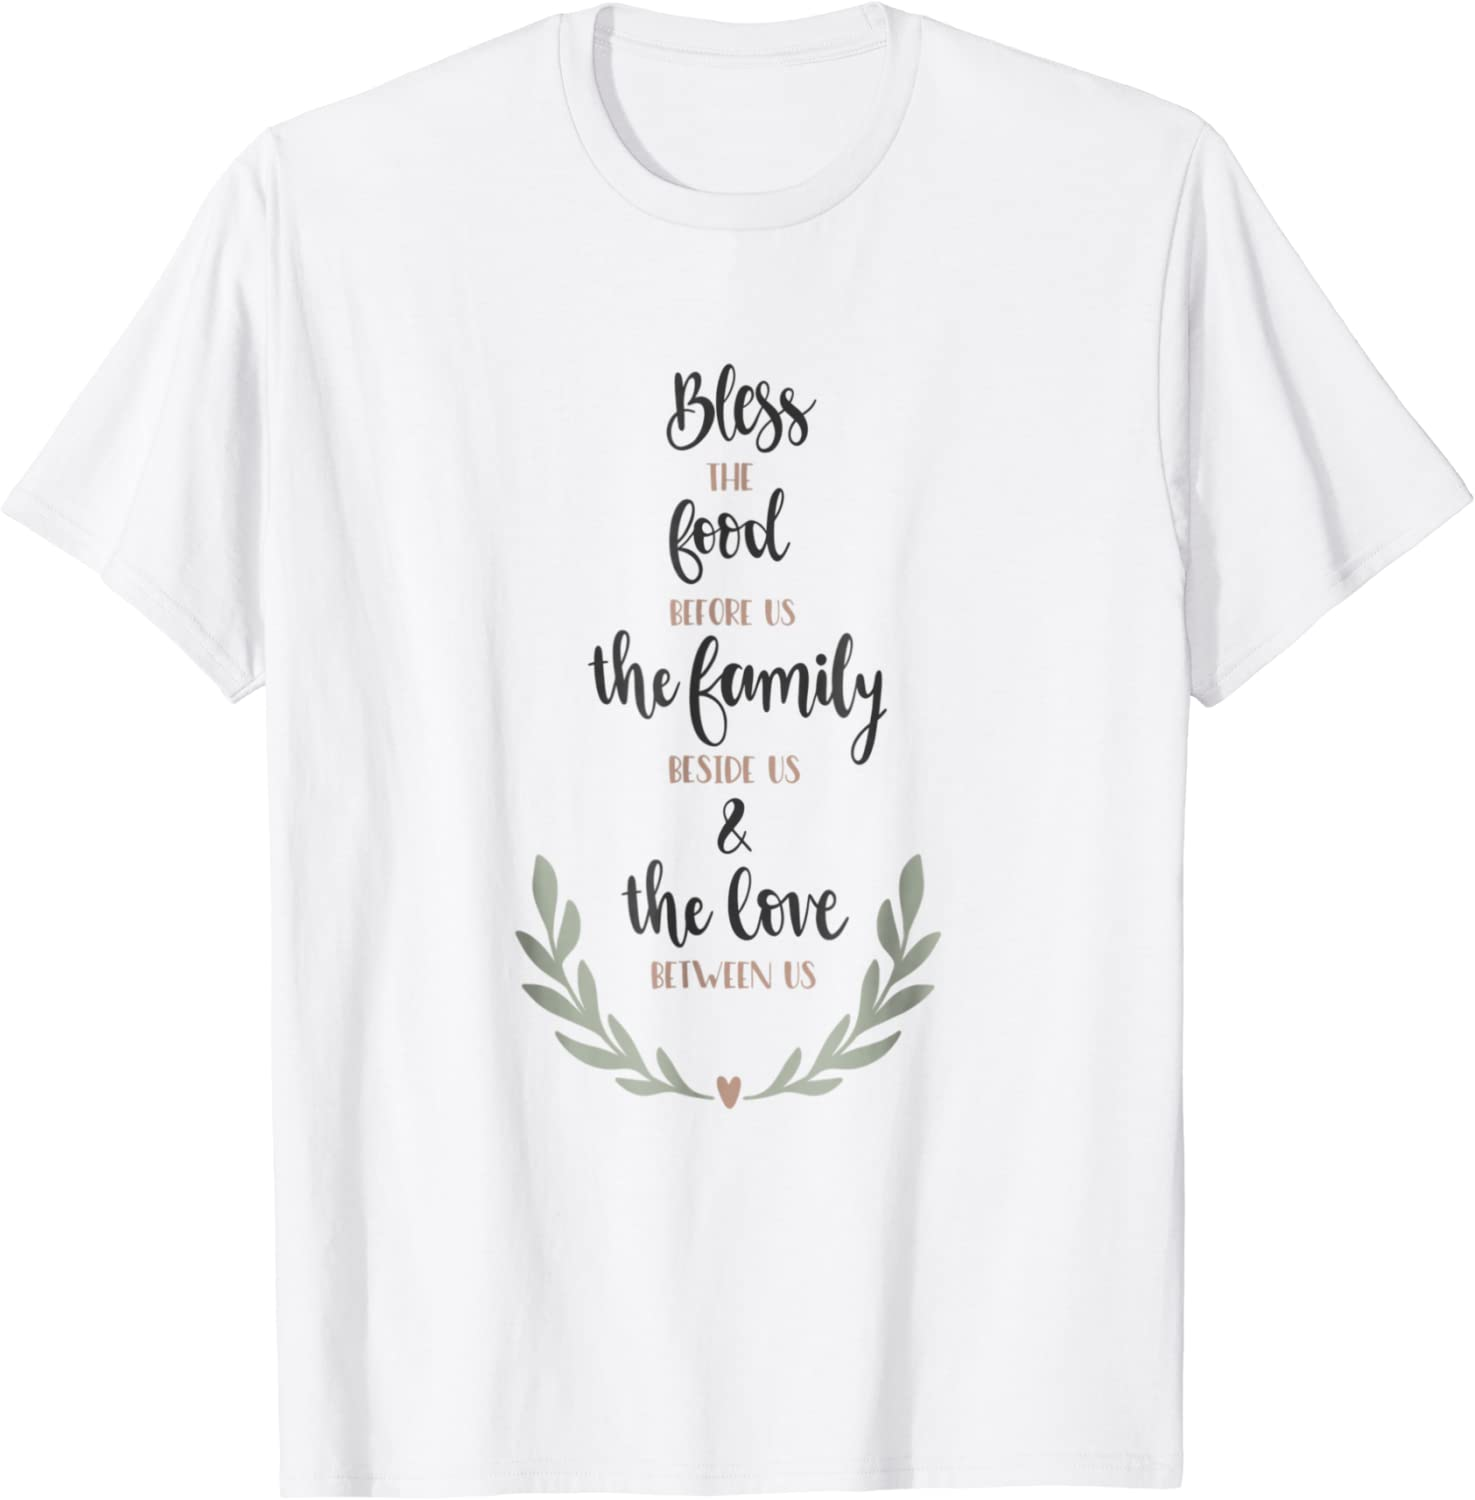 Bless The Food Before Us Family Beside Love Between Us Shirt